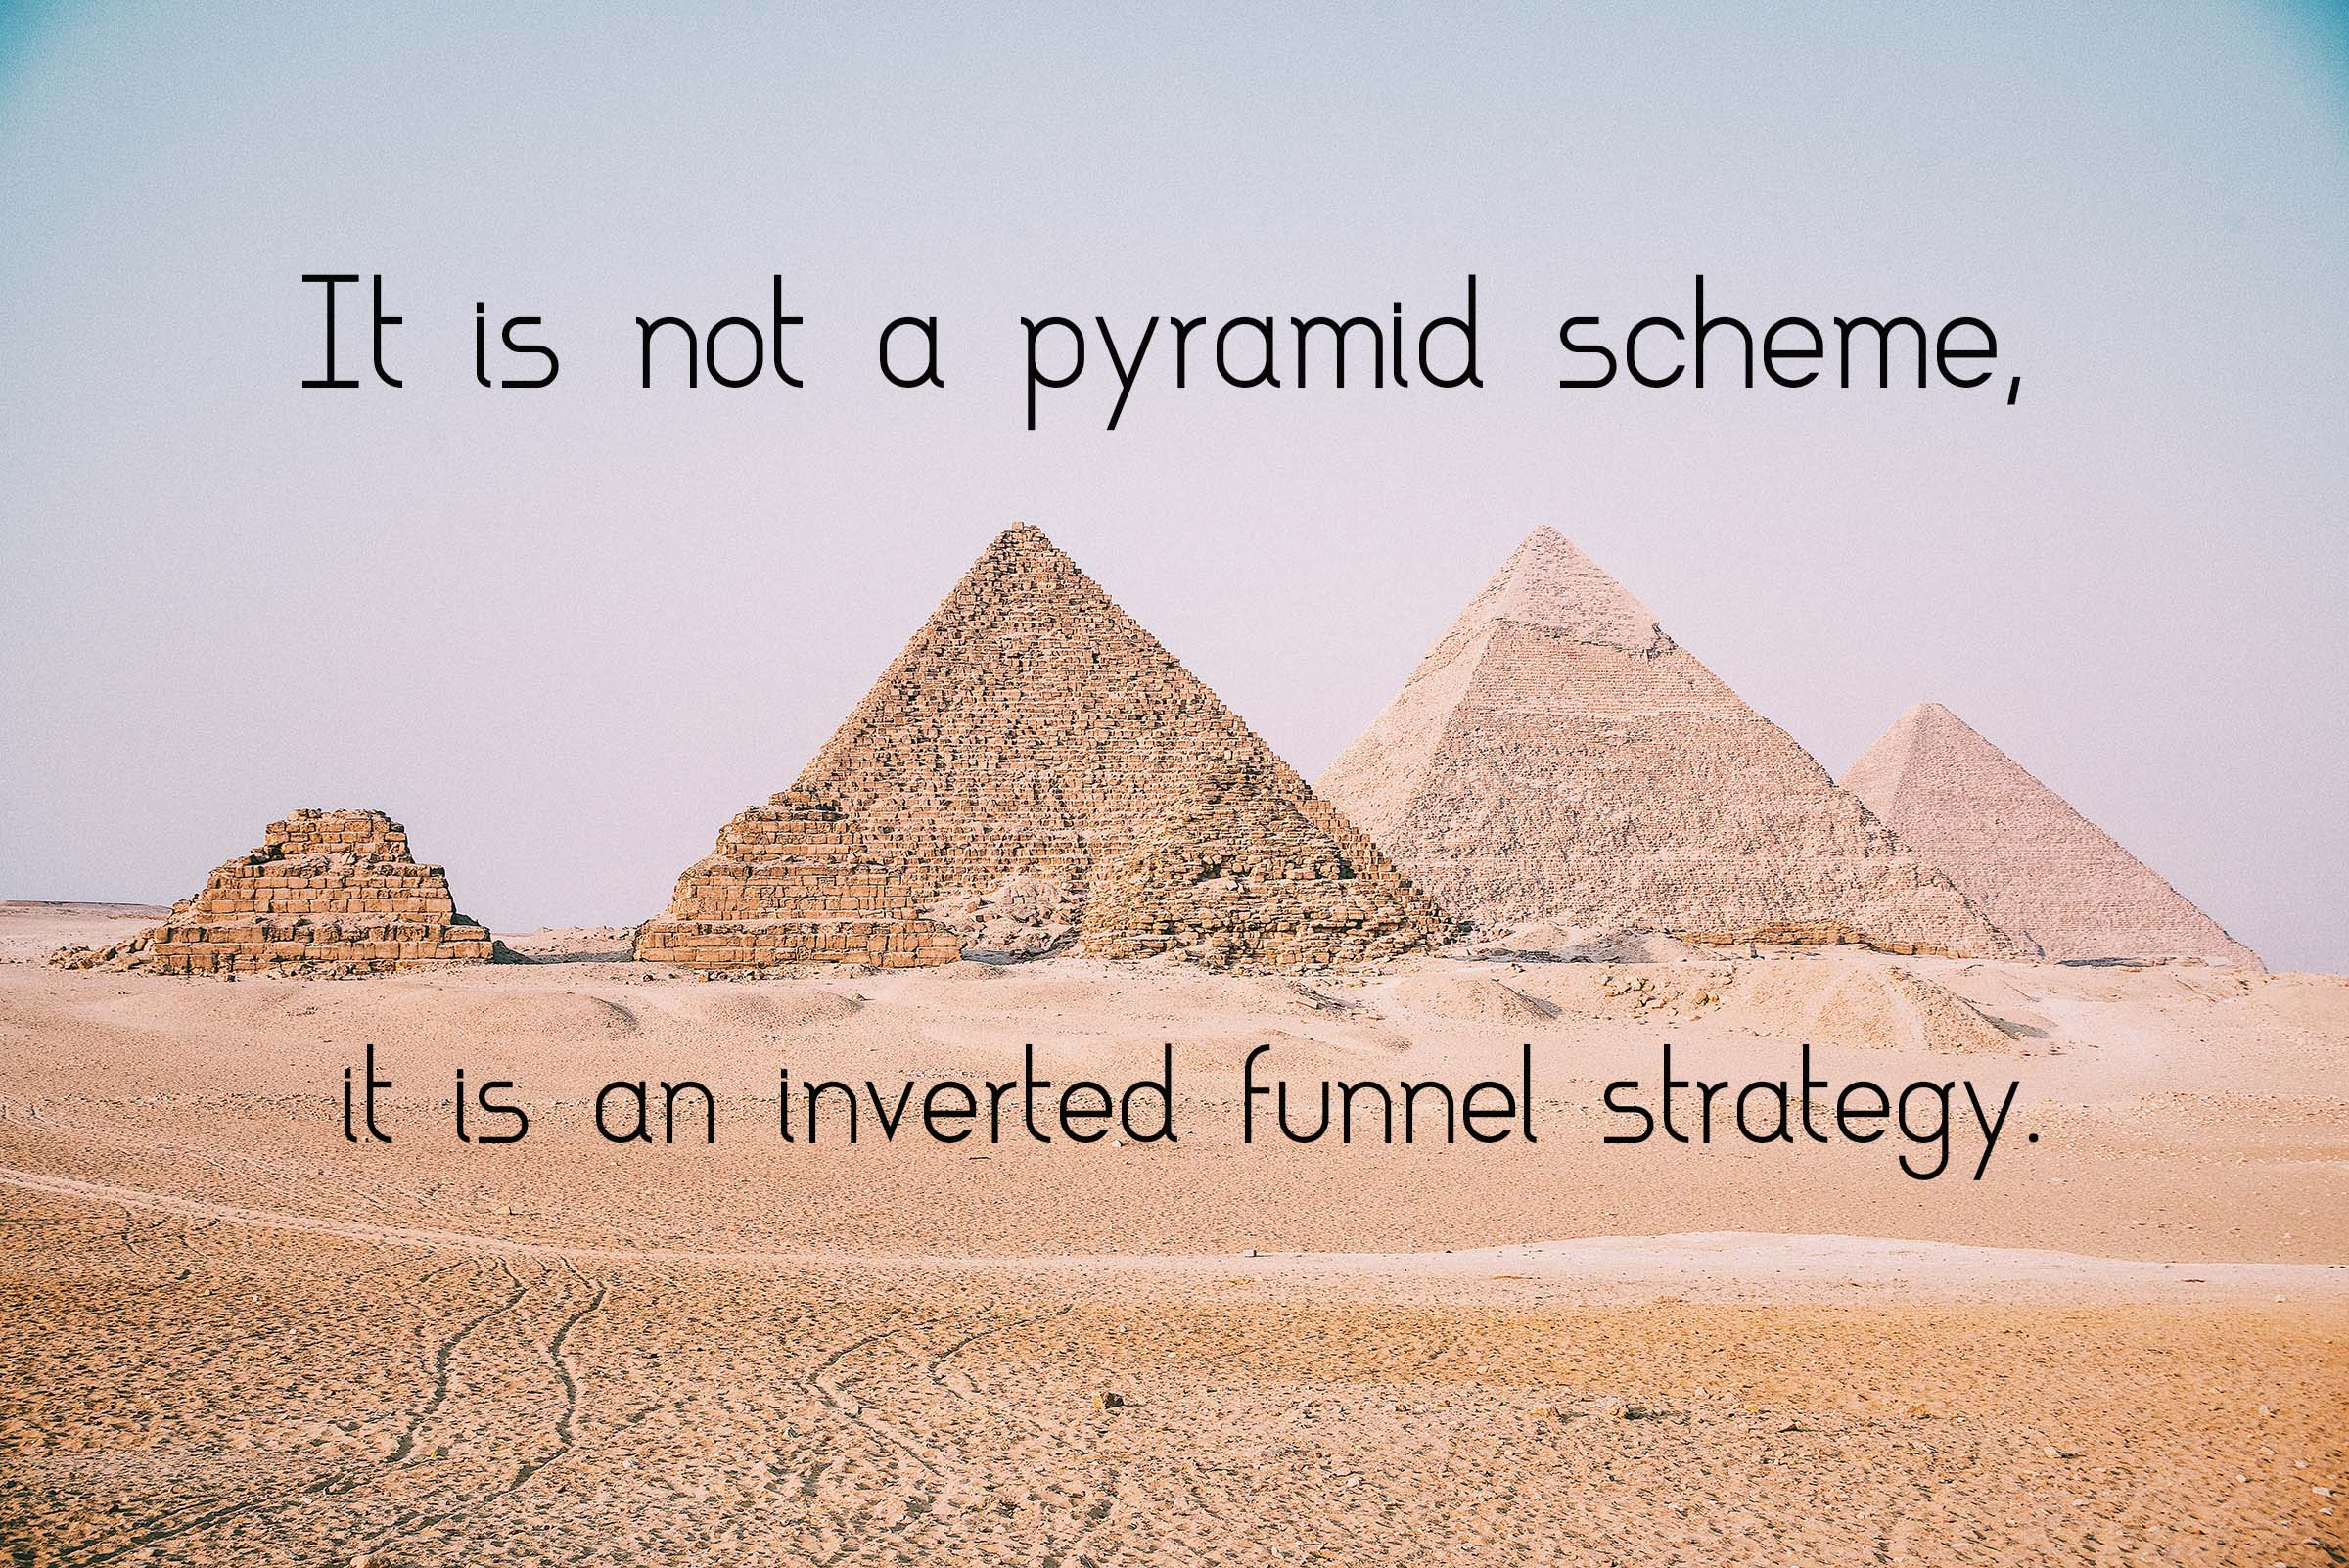 it is not a pyramid scheme